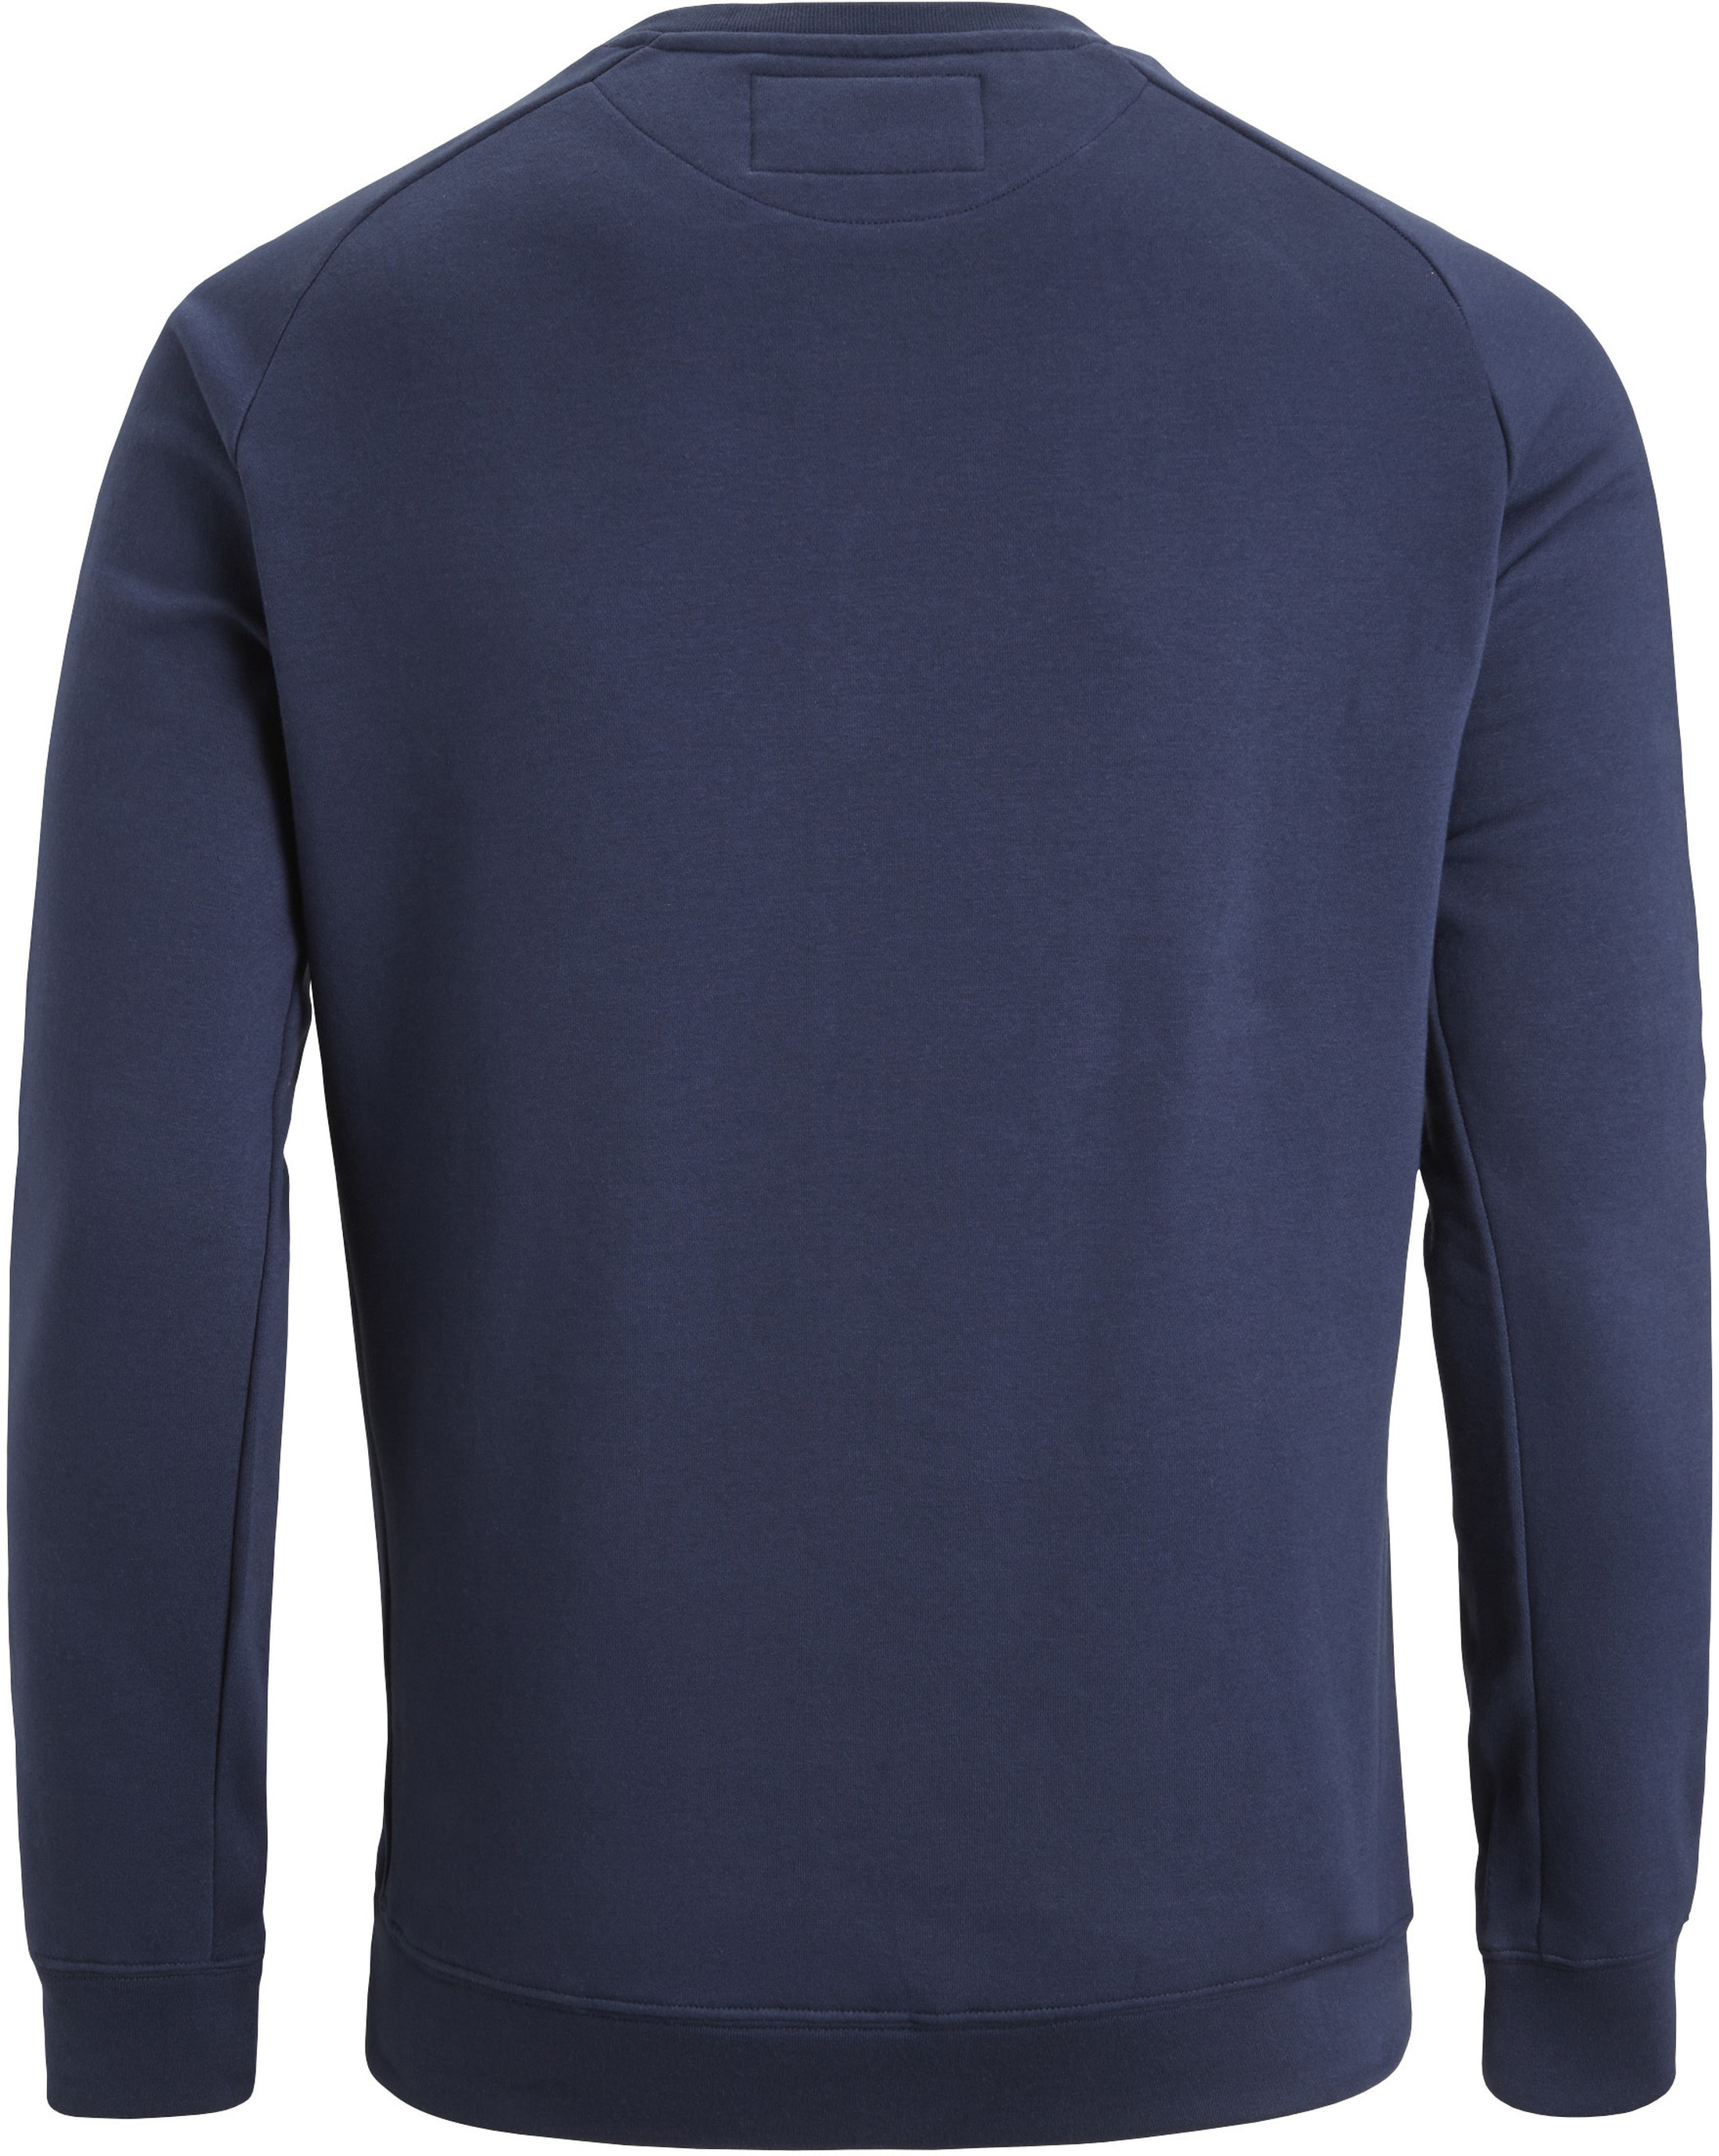 Bjorn Borg Sweater Peacoat Navy foto 2